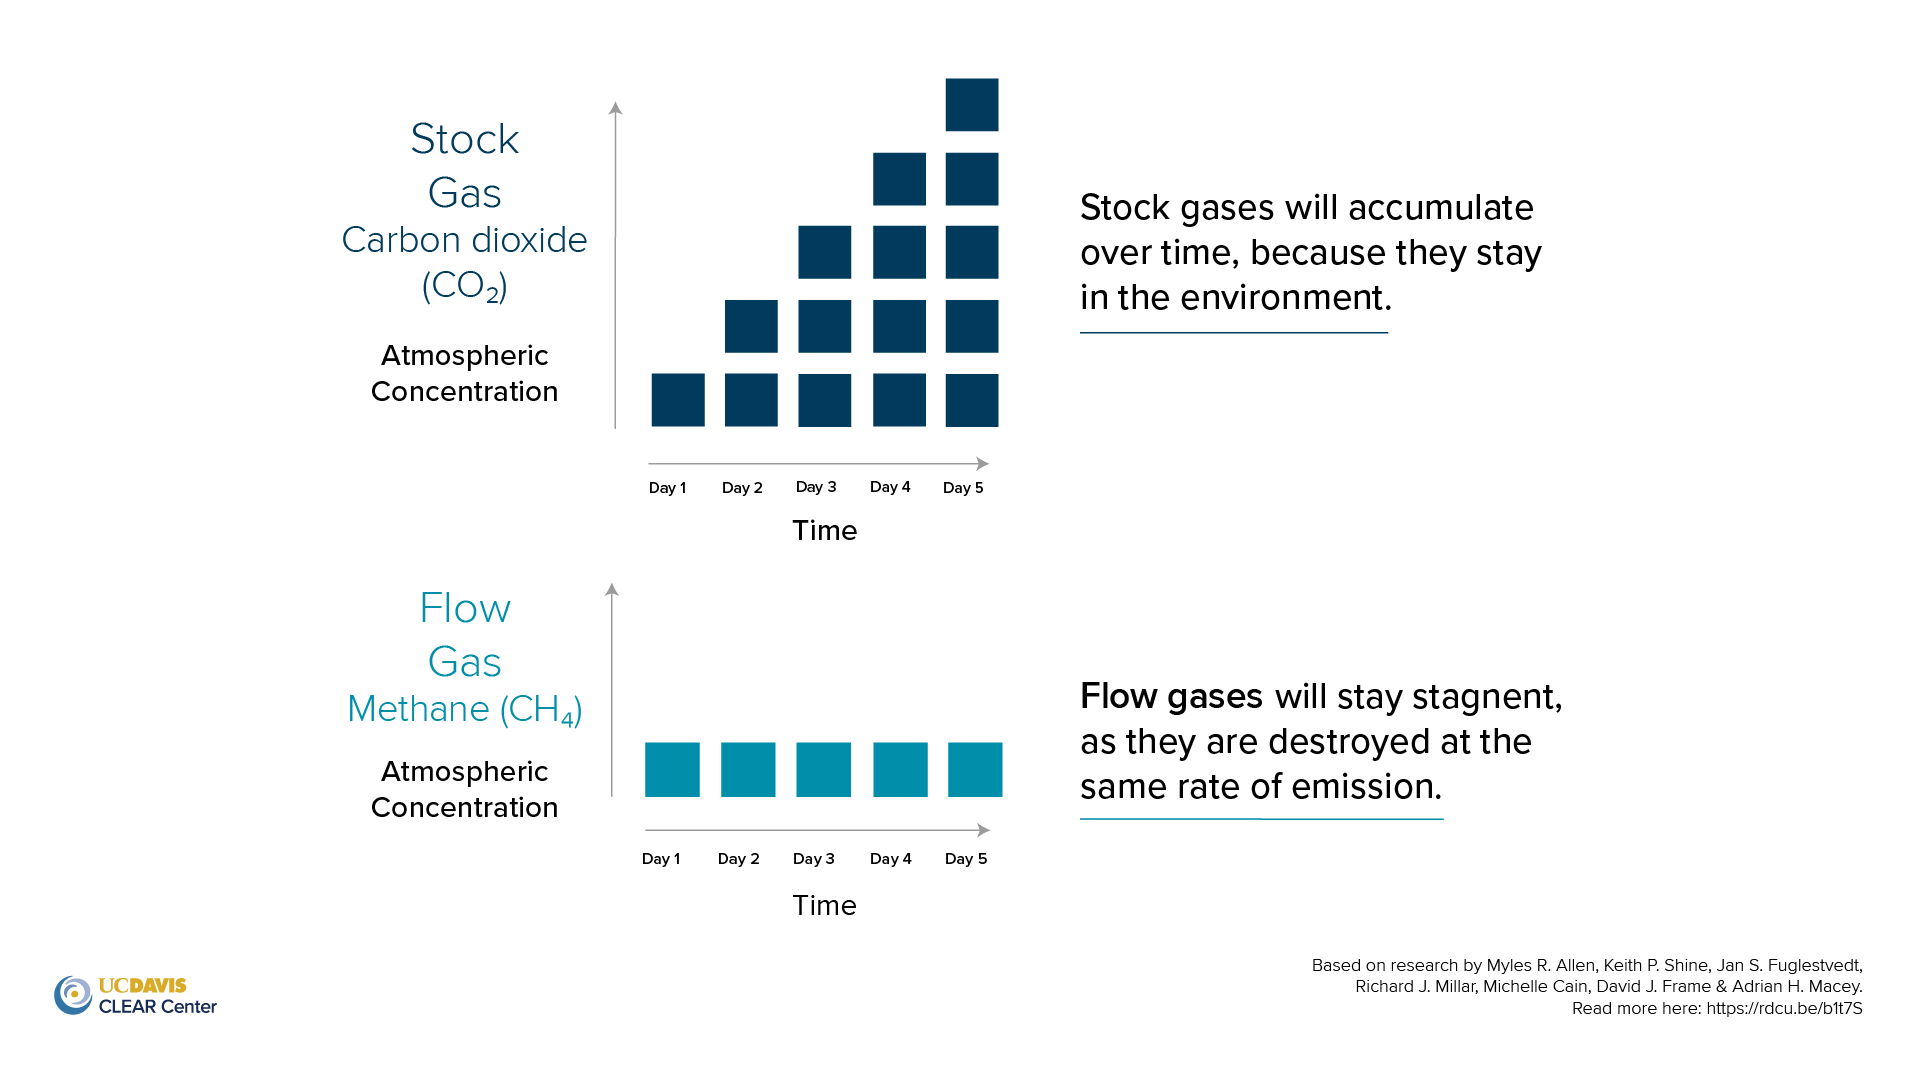 Photo of blocks stockpiling to represent stock gas and photo of blocks in a constant to represent flow gas